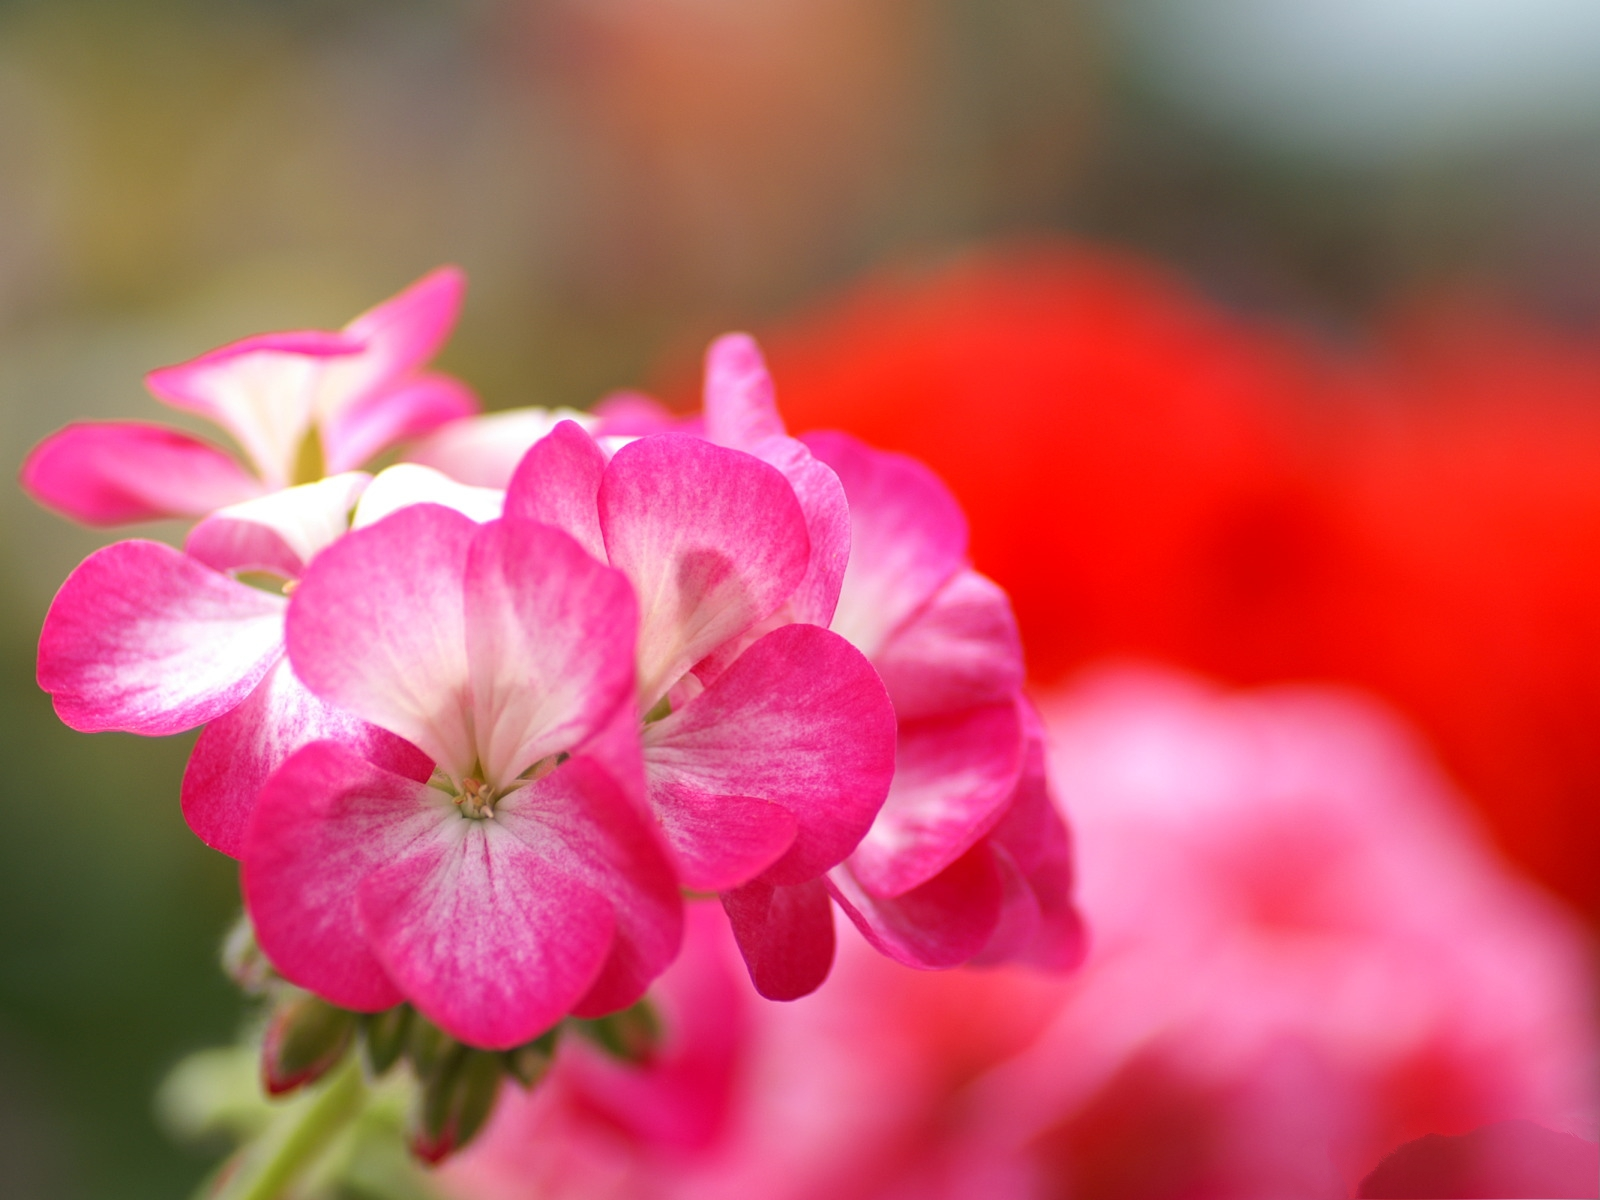 click to free download the wallpaper--Flowers Photography, Pink to Red Flowers, Fuzzy Background 1600X1200 free wallpaper download